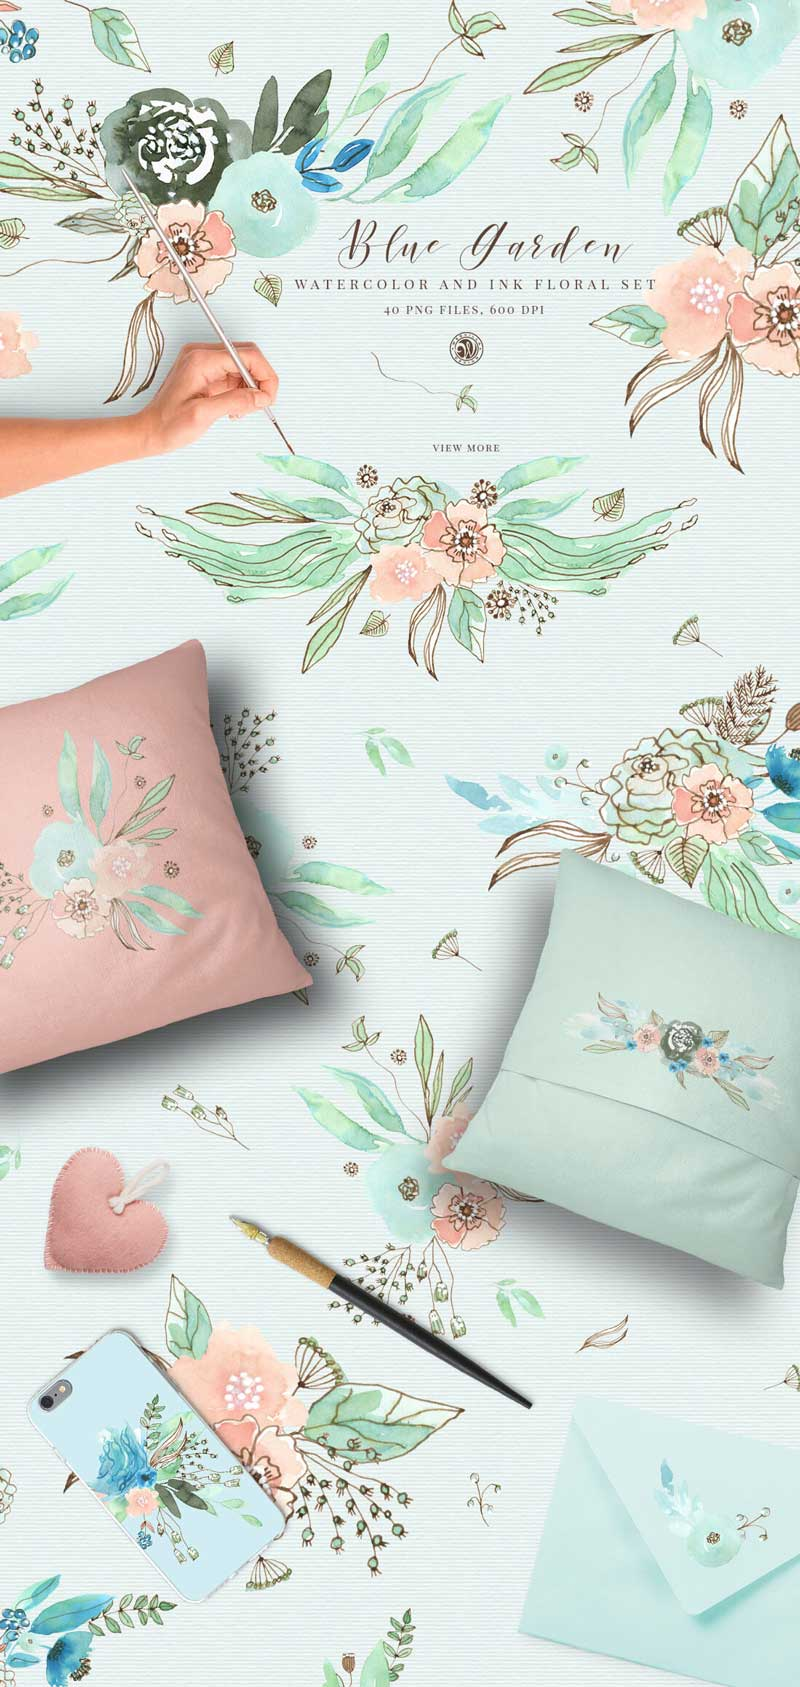 Blue-Garden-Watercolor-and-Ink-Floral-Set-40-PNG-Files